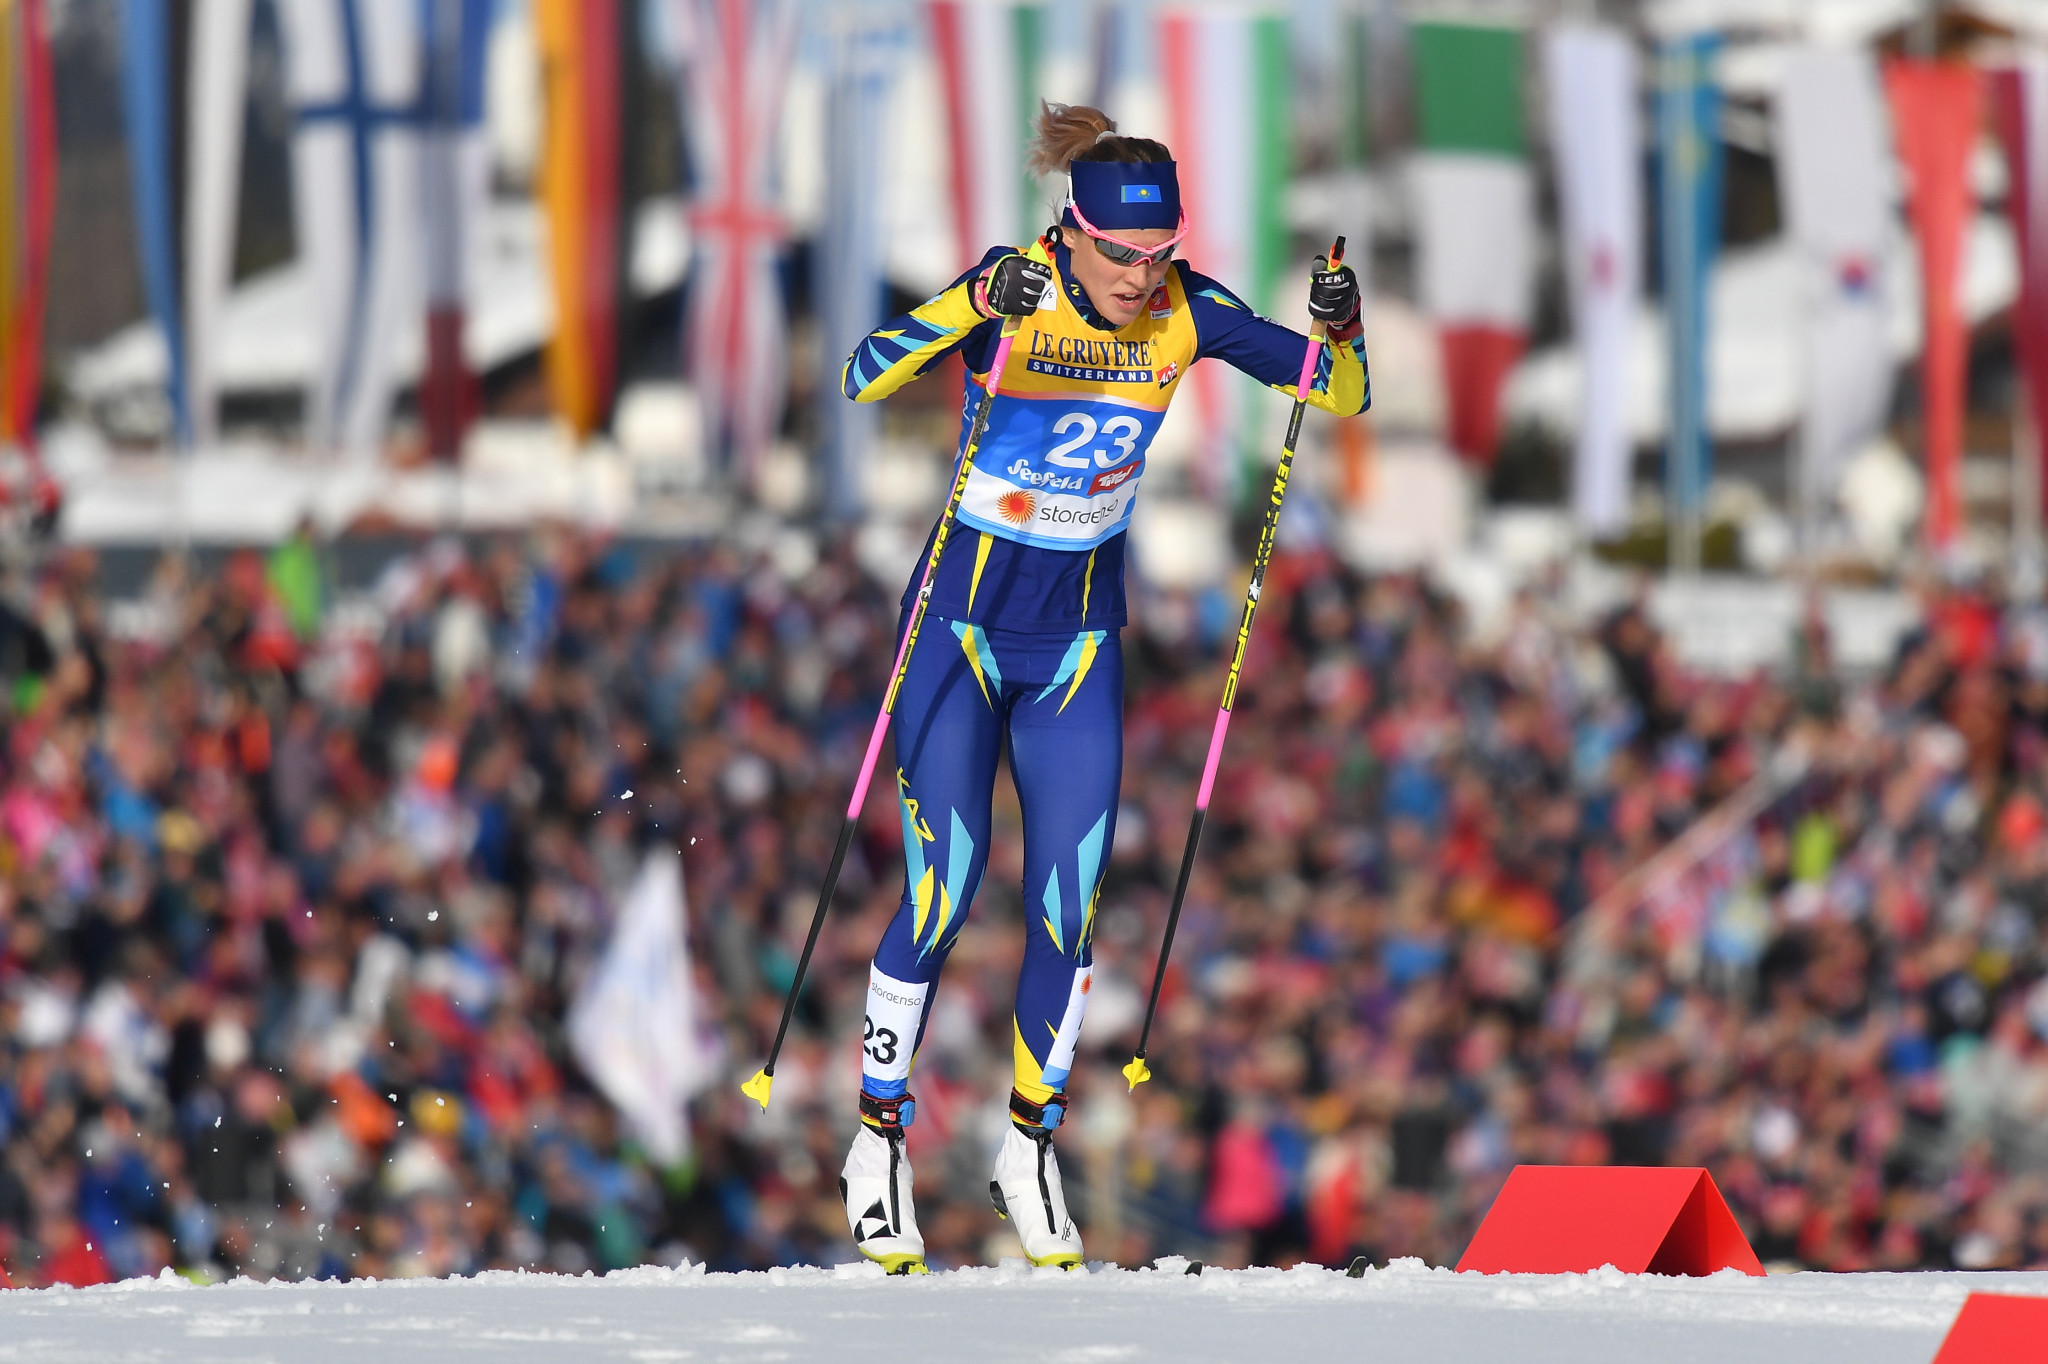 Kazakh cross-country skier Shevchenko banned for whereabouts failures